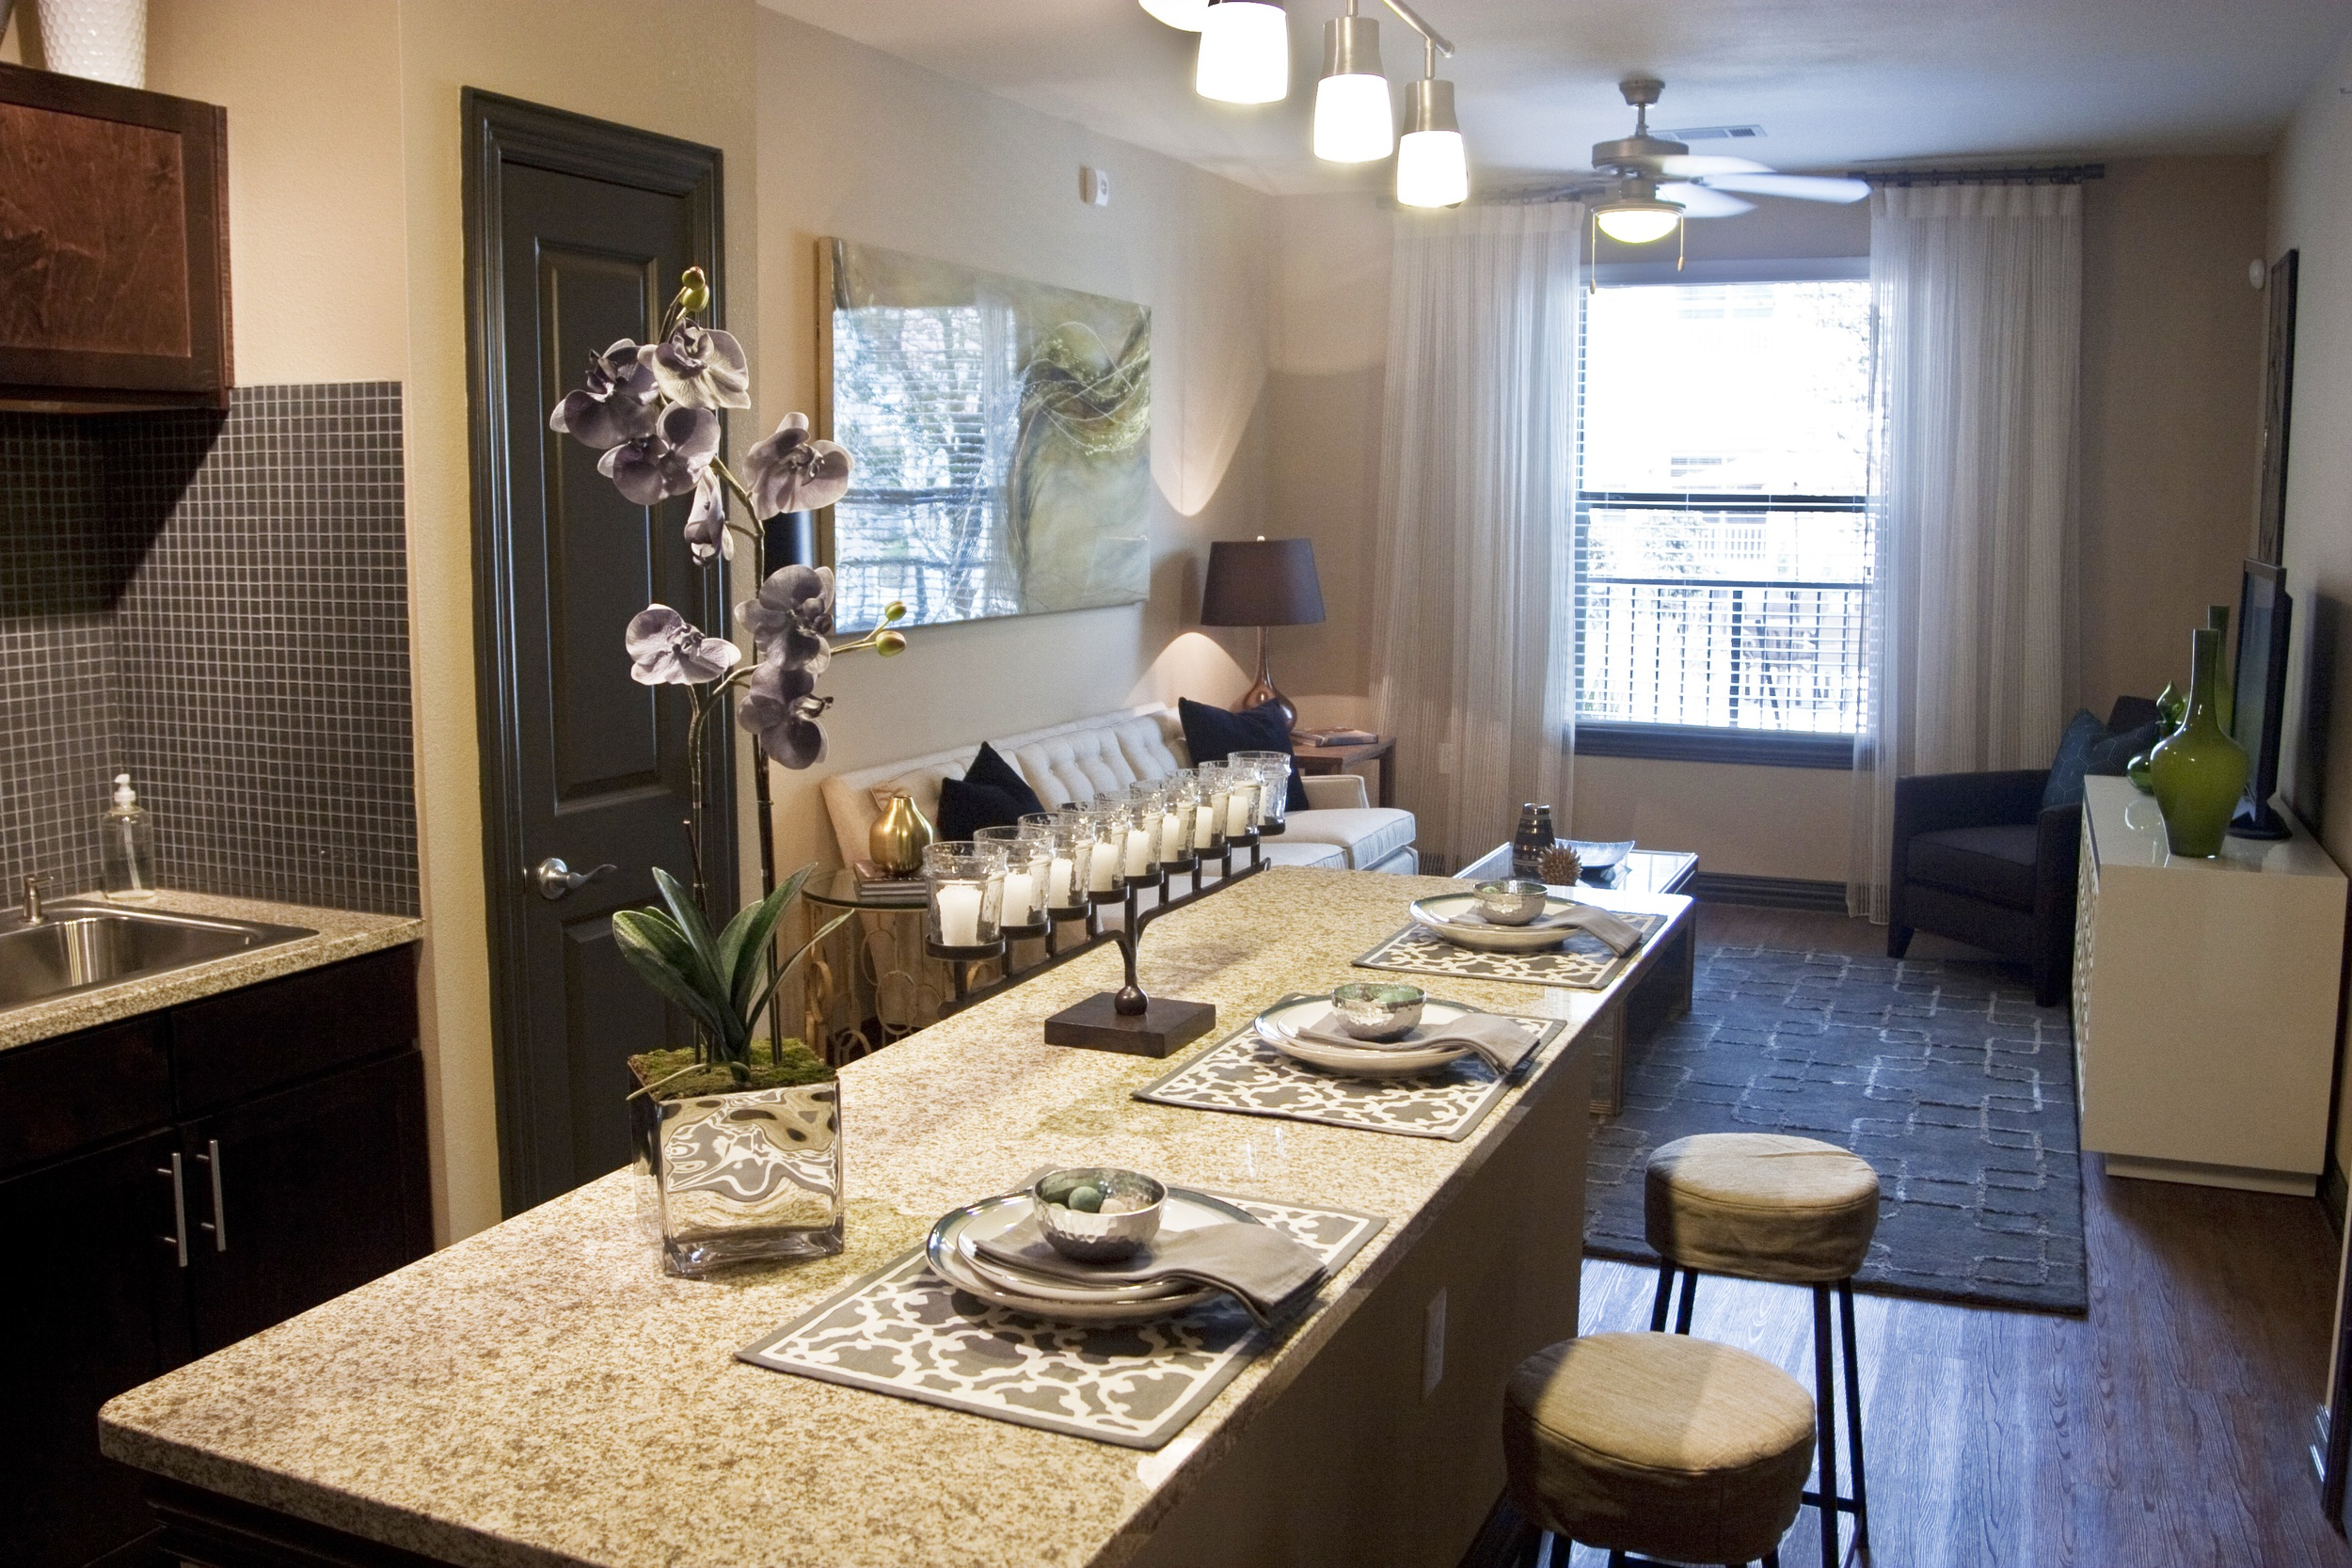 floor plans at our apartments in irving - 3 Bedroom Apartments Irving Tx